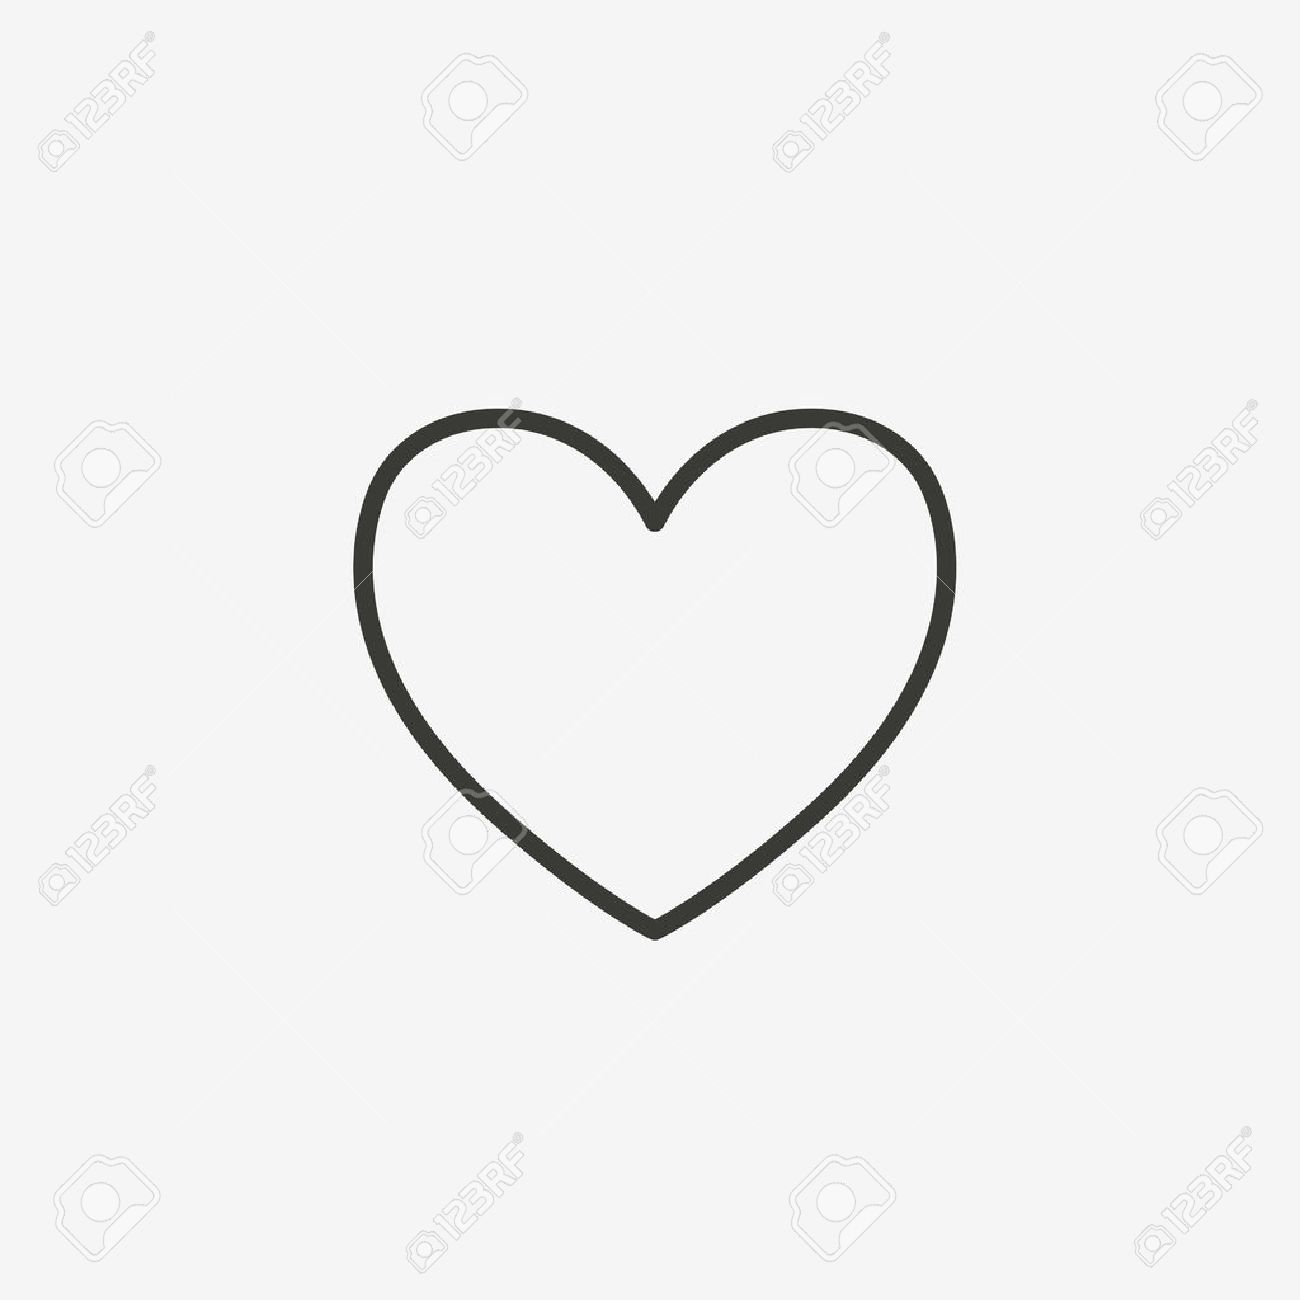 heart outline icon of brown outline for illustration - 60840587